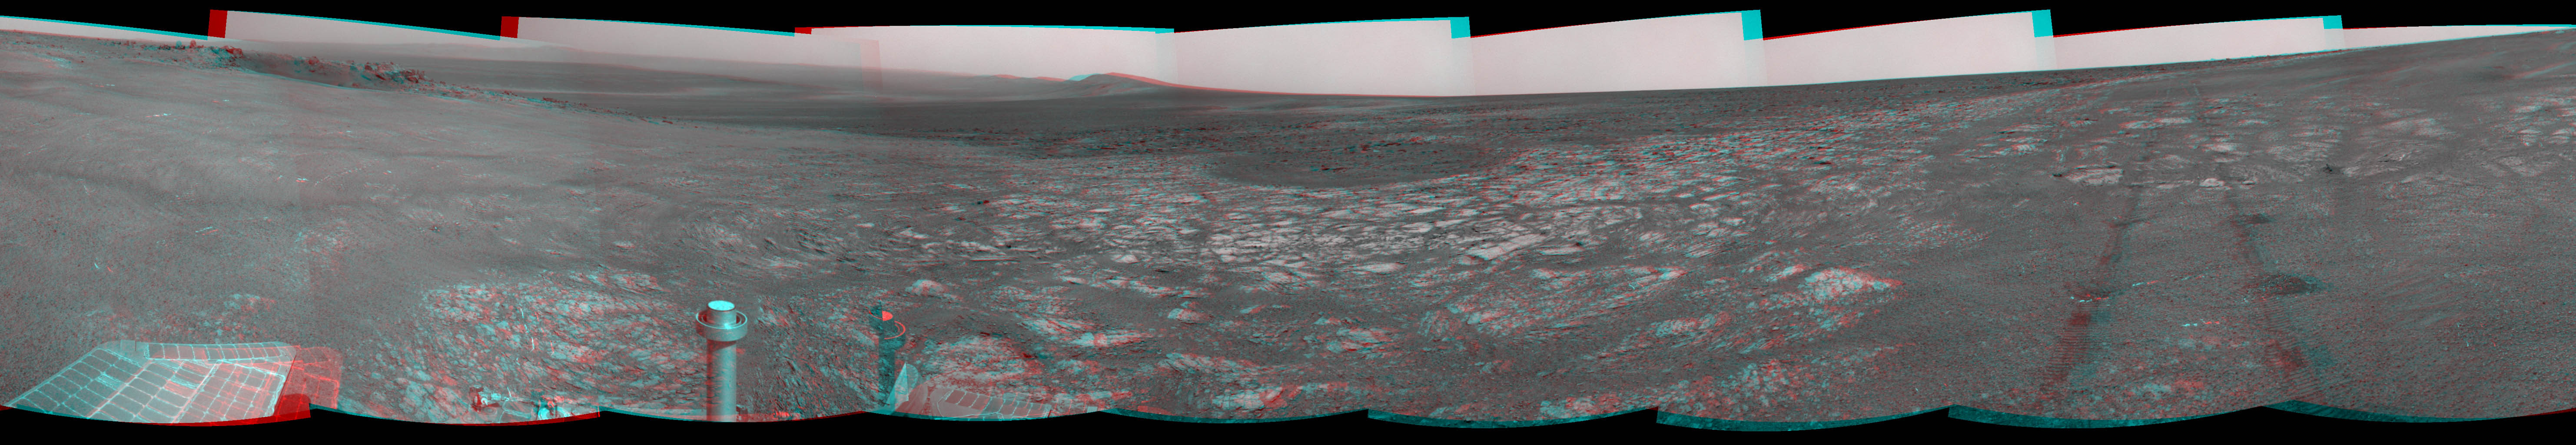 This 3-D scene shows the view from where NASA's Mars Exploration Rover Opportunity first arrived on the rim of Endeavour crater, an impact crater about 14 miles (22 kilometers) in diameter. You will need 3D glasses to view this image.